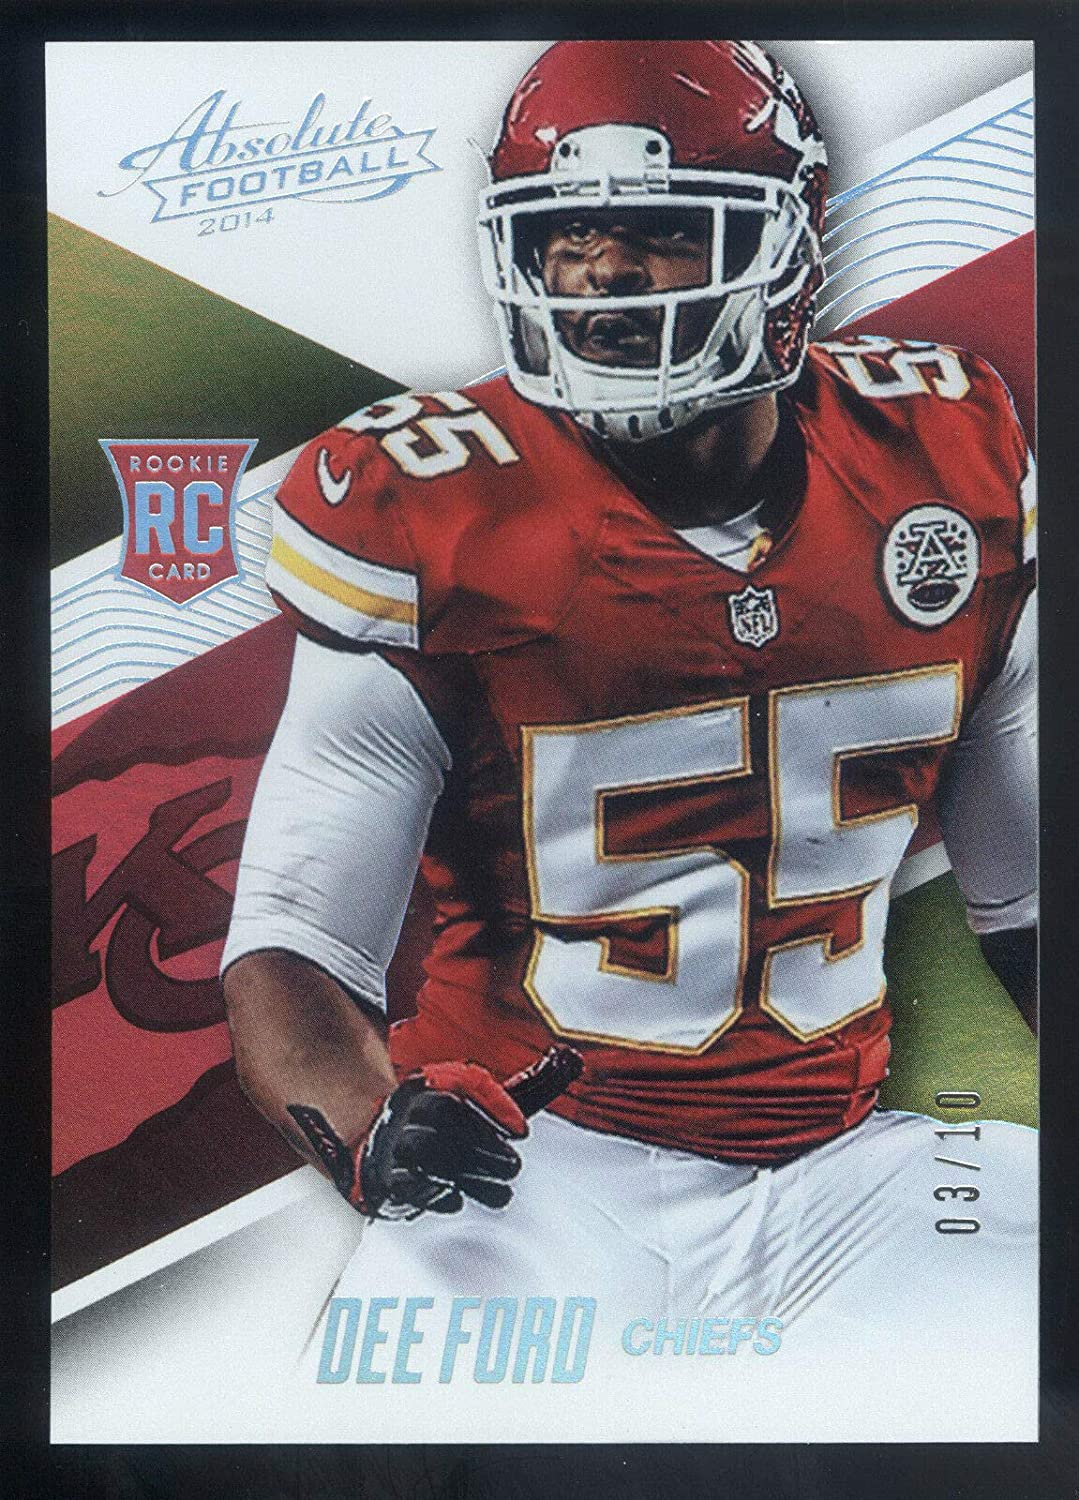 2014 Super beauty product restock quality top Panini Absolute Spectrum SEAL limited product Platinum #03 #109 Dee Ford Rookie